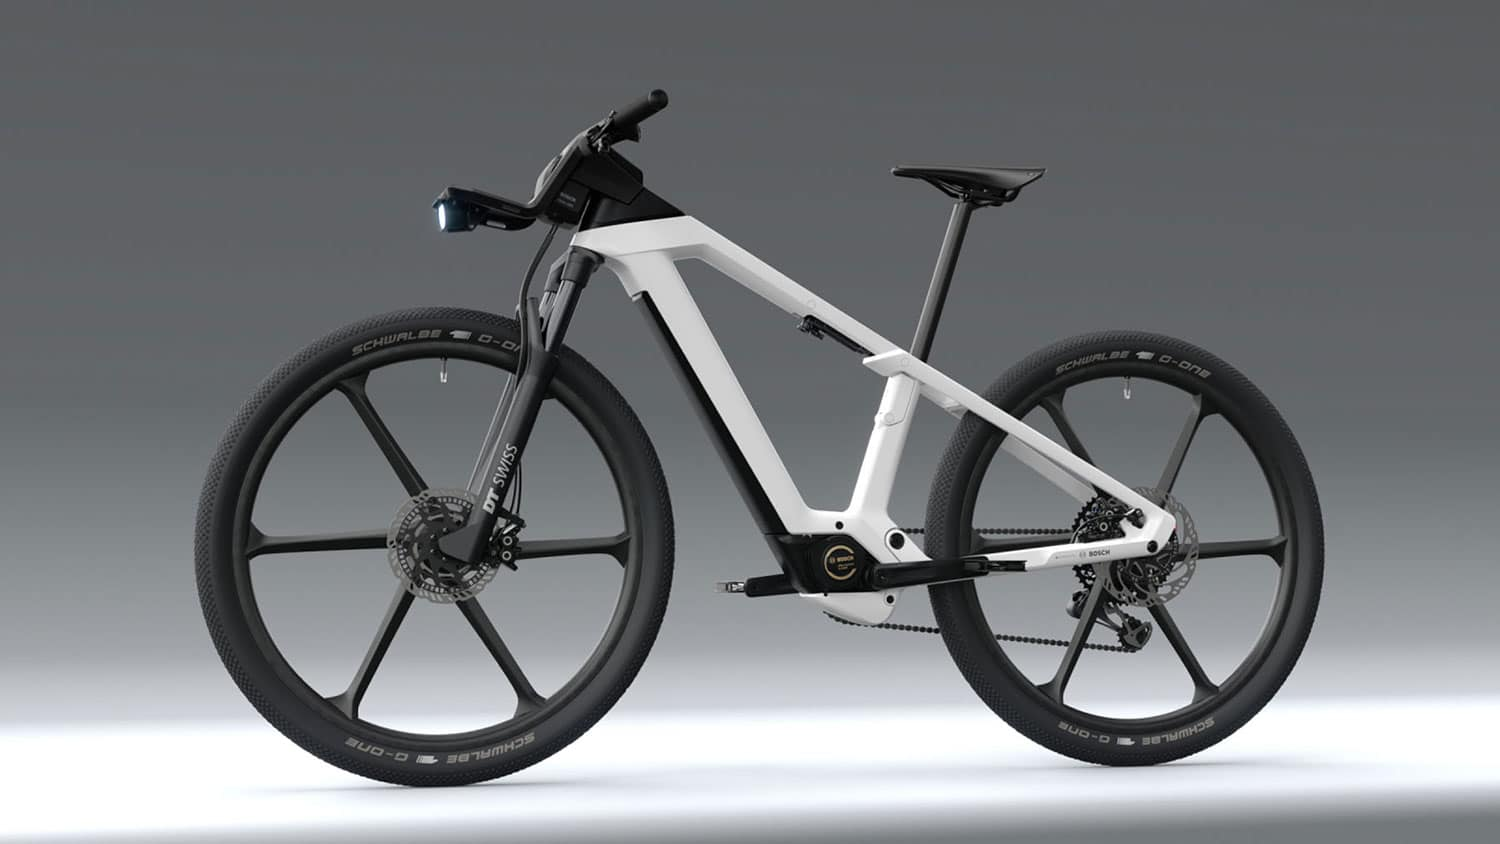 Bosch shows a concept for fully integrated e-bike of the future